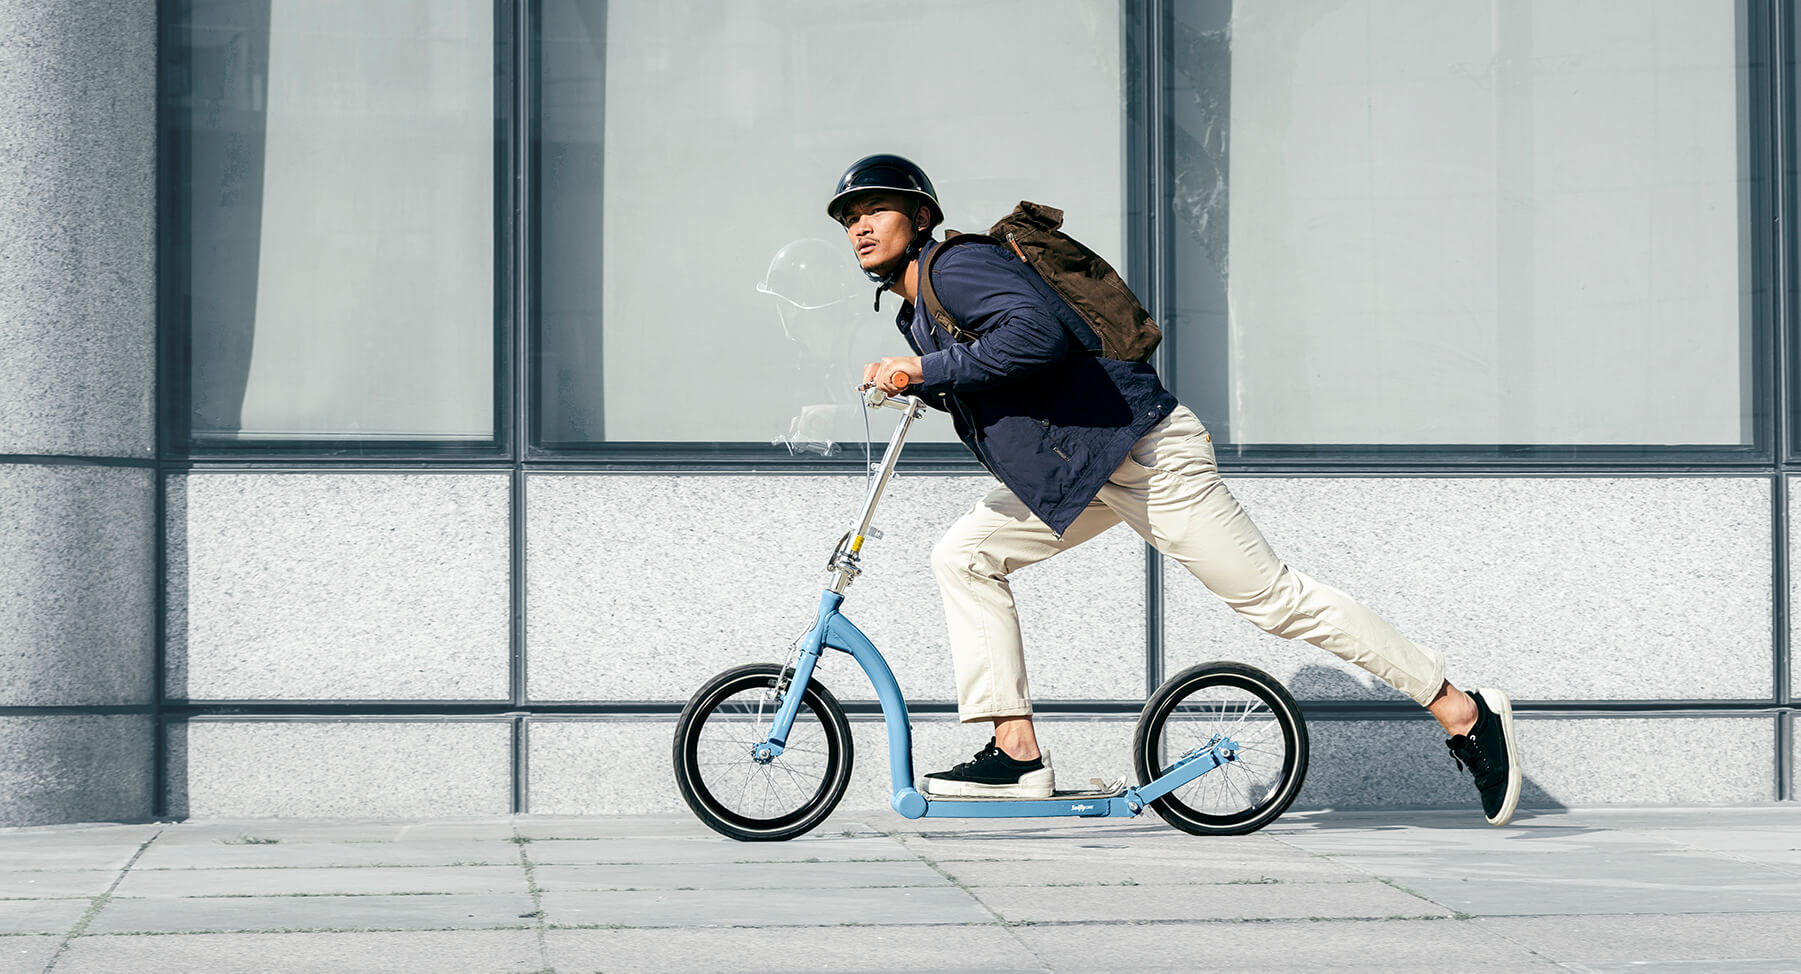 road scooters for adults, foldable adult scooter, adult folding scooter